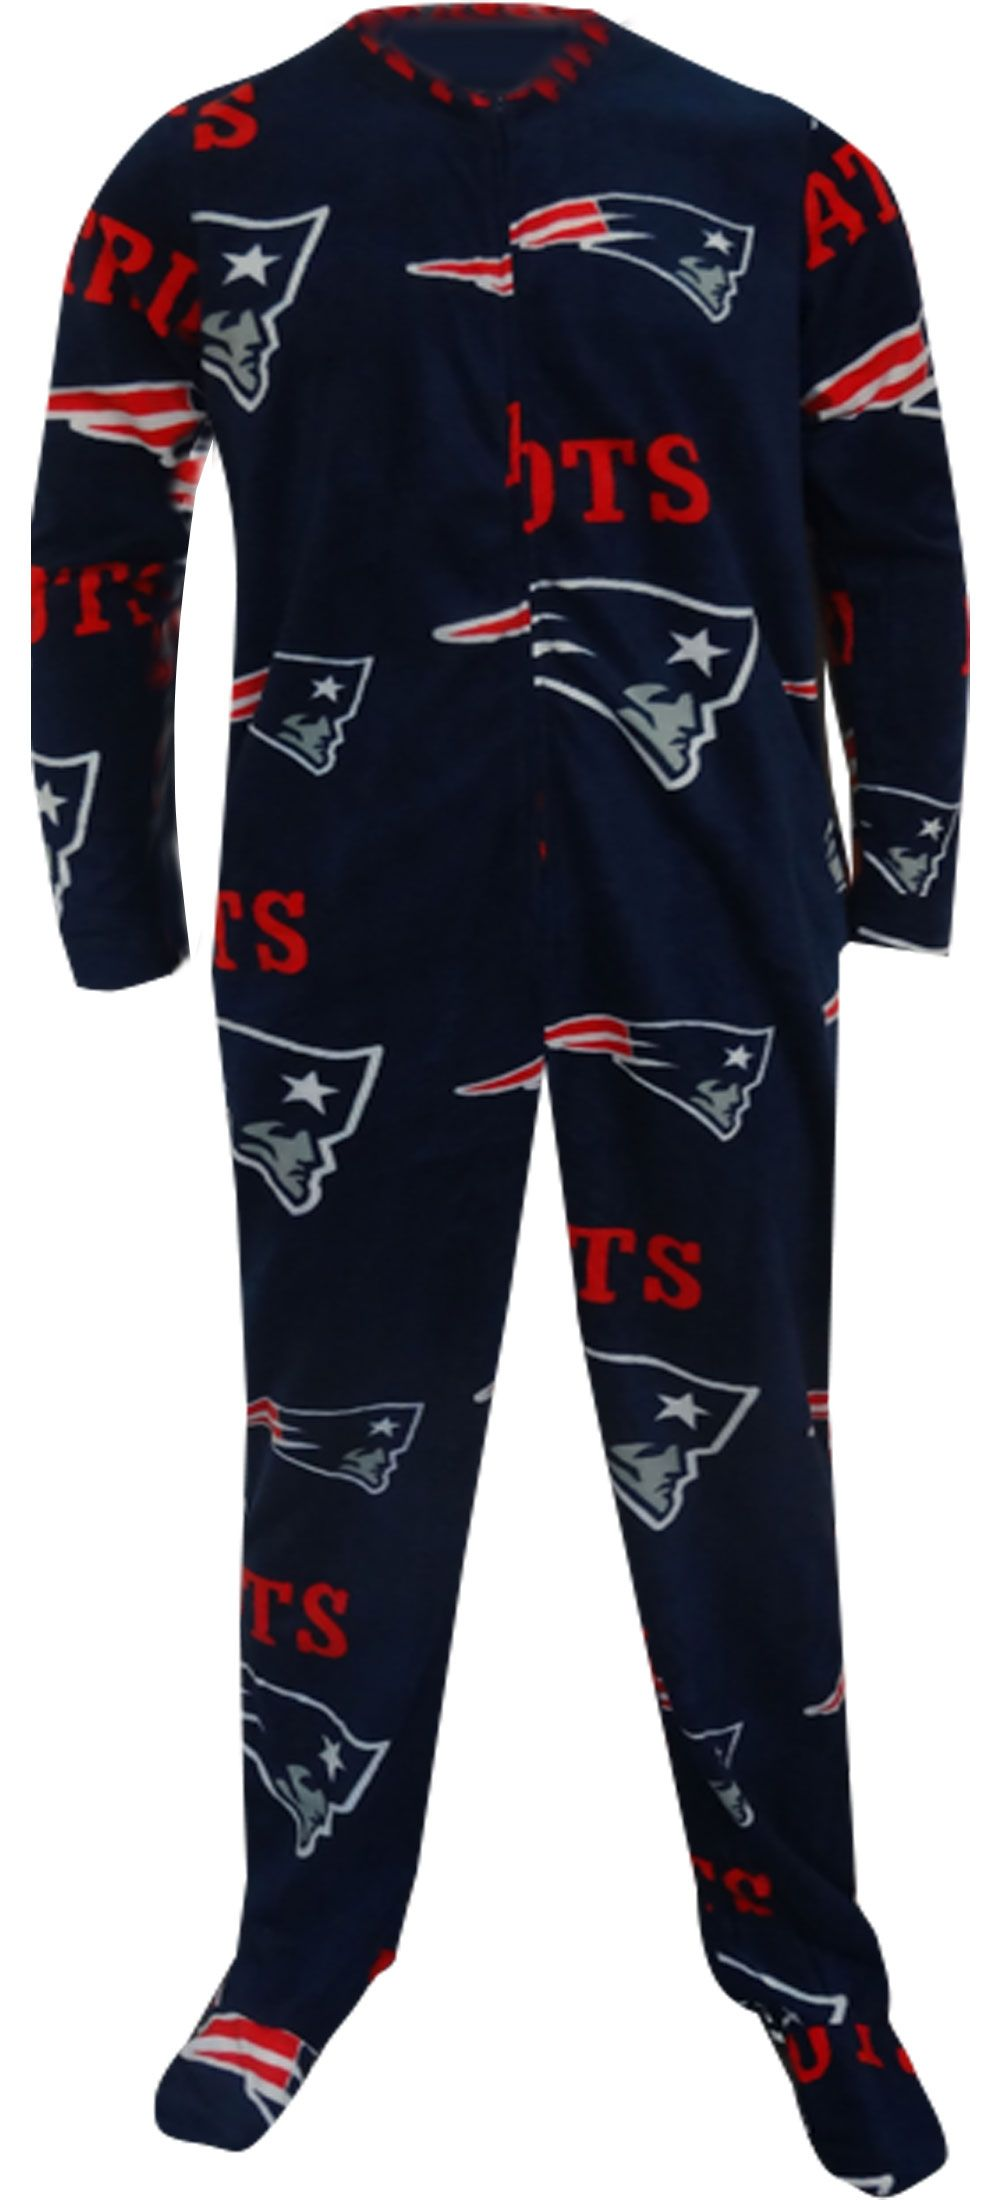 Webundies Com New England Patriots Guys Navy Blue Onesie Footie Pajama New England Patriots Mens Loungewear New England Patriots Football